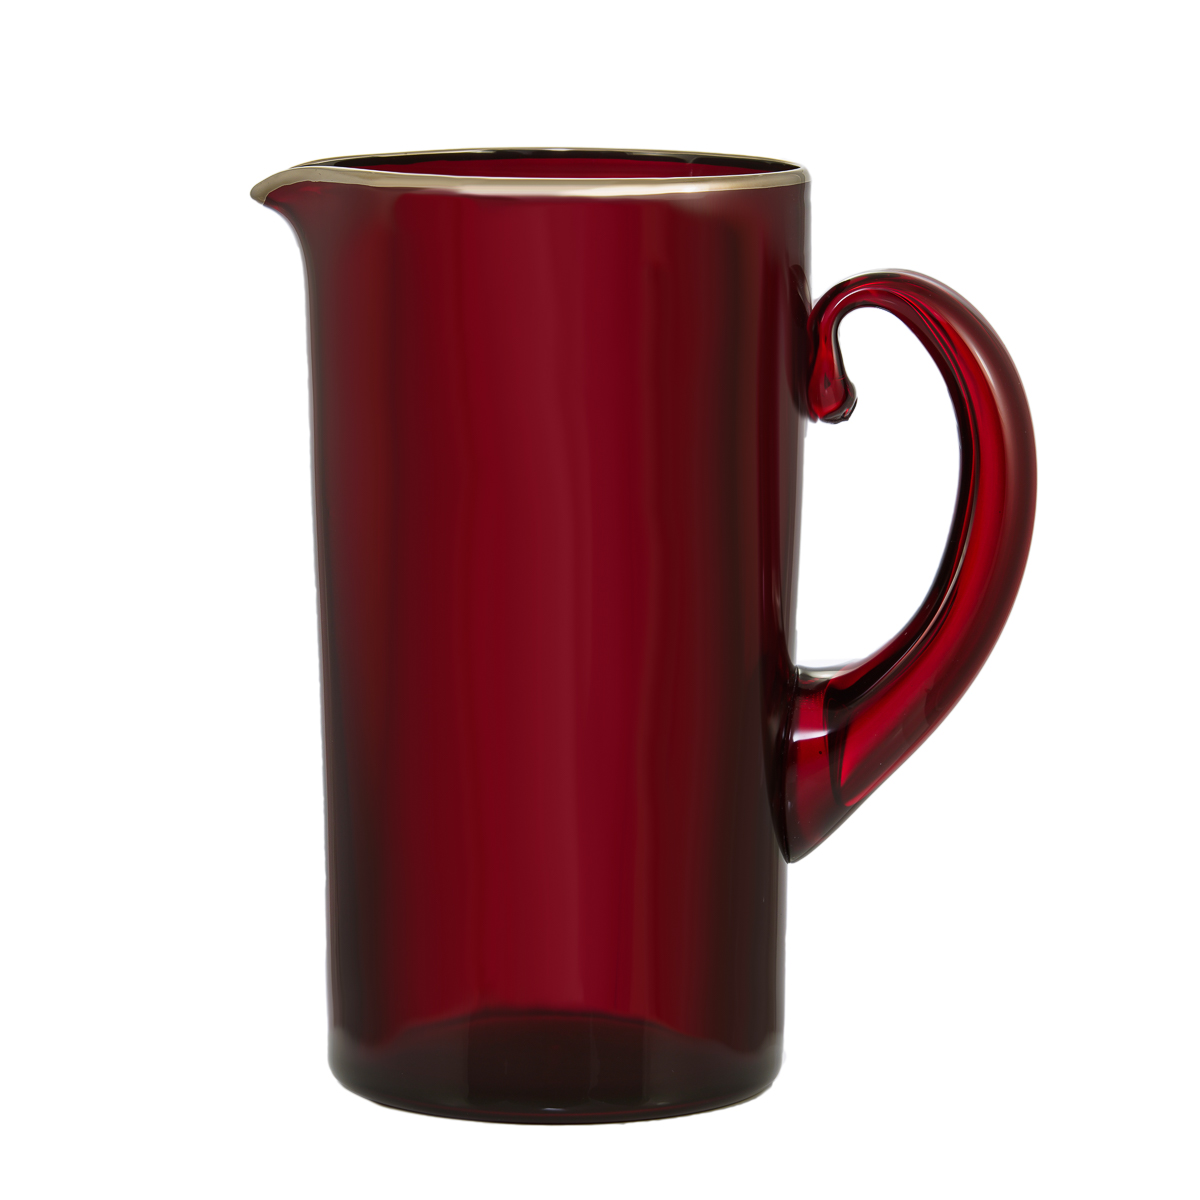 jug_viola_red_platinum_lux_luxury_italian_italy